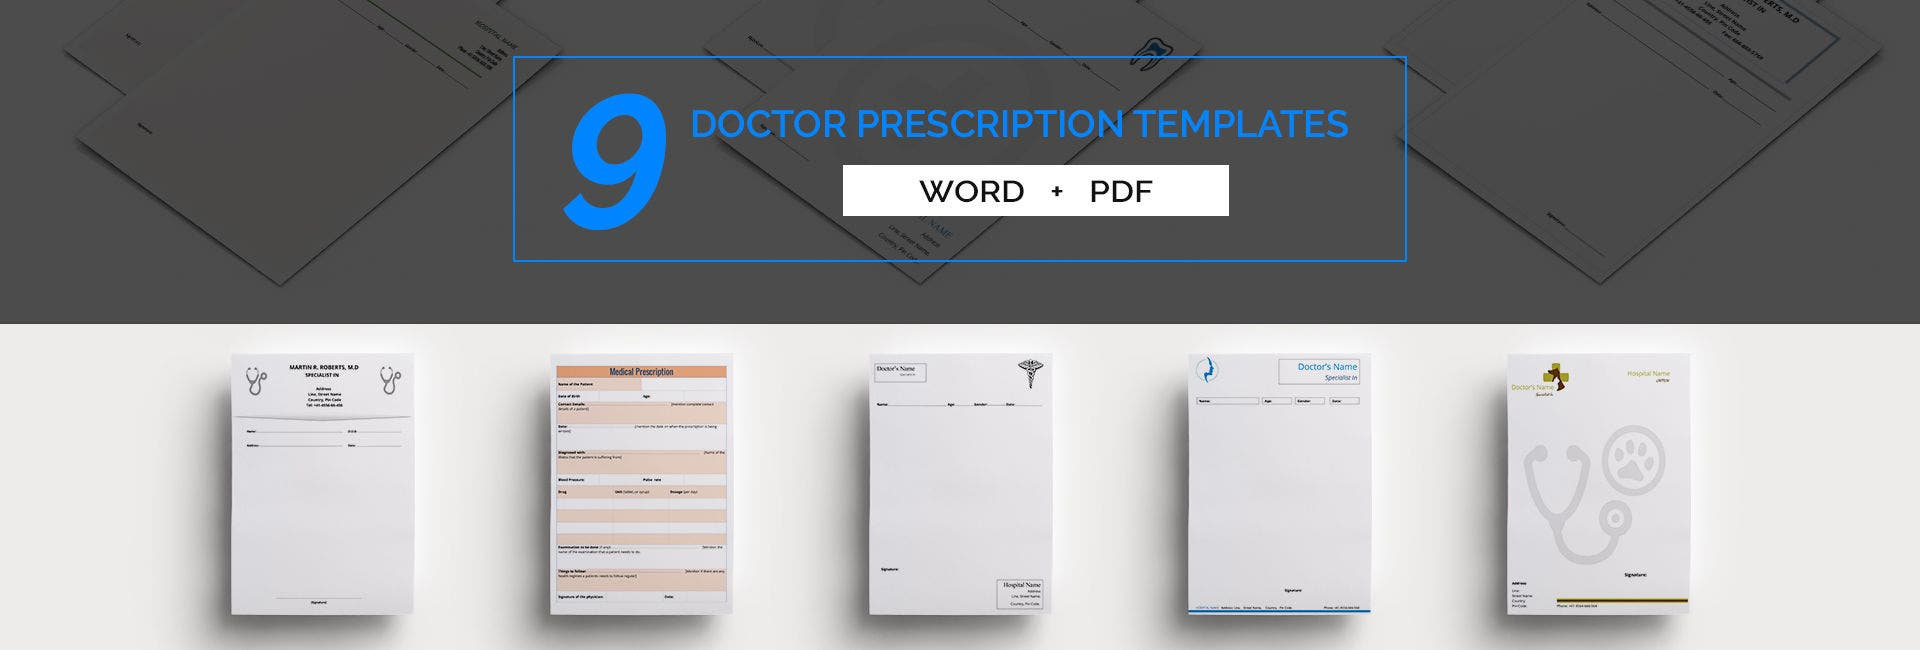 doctor's prescription templates